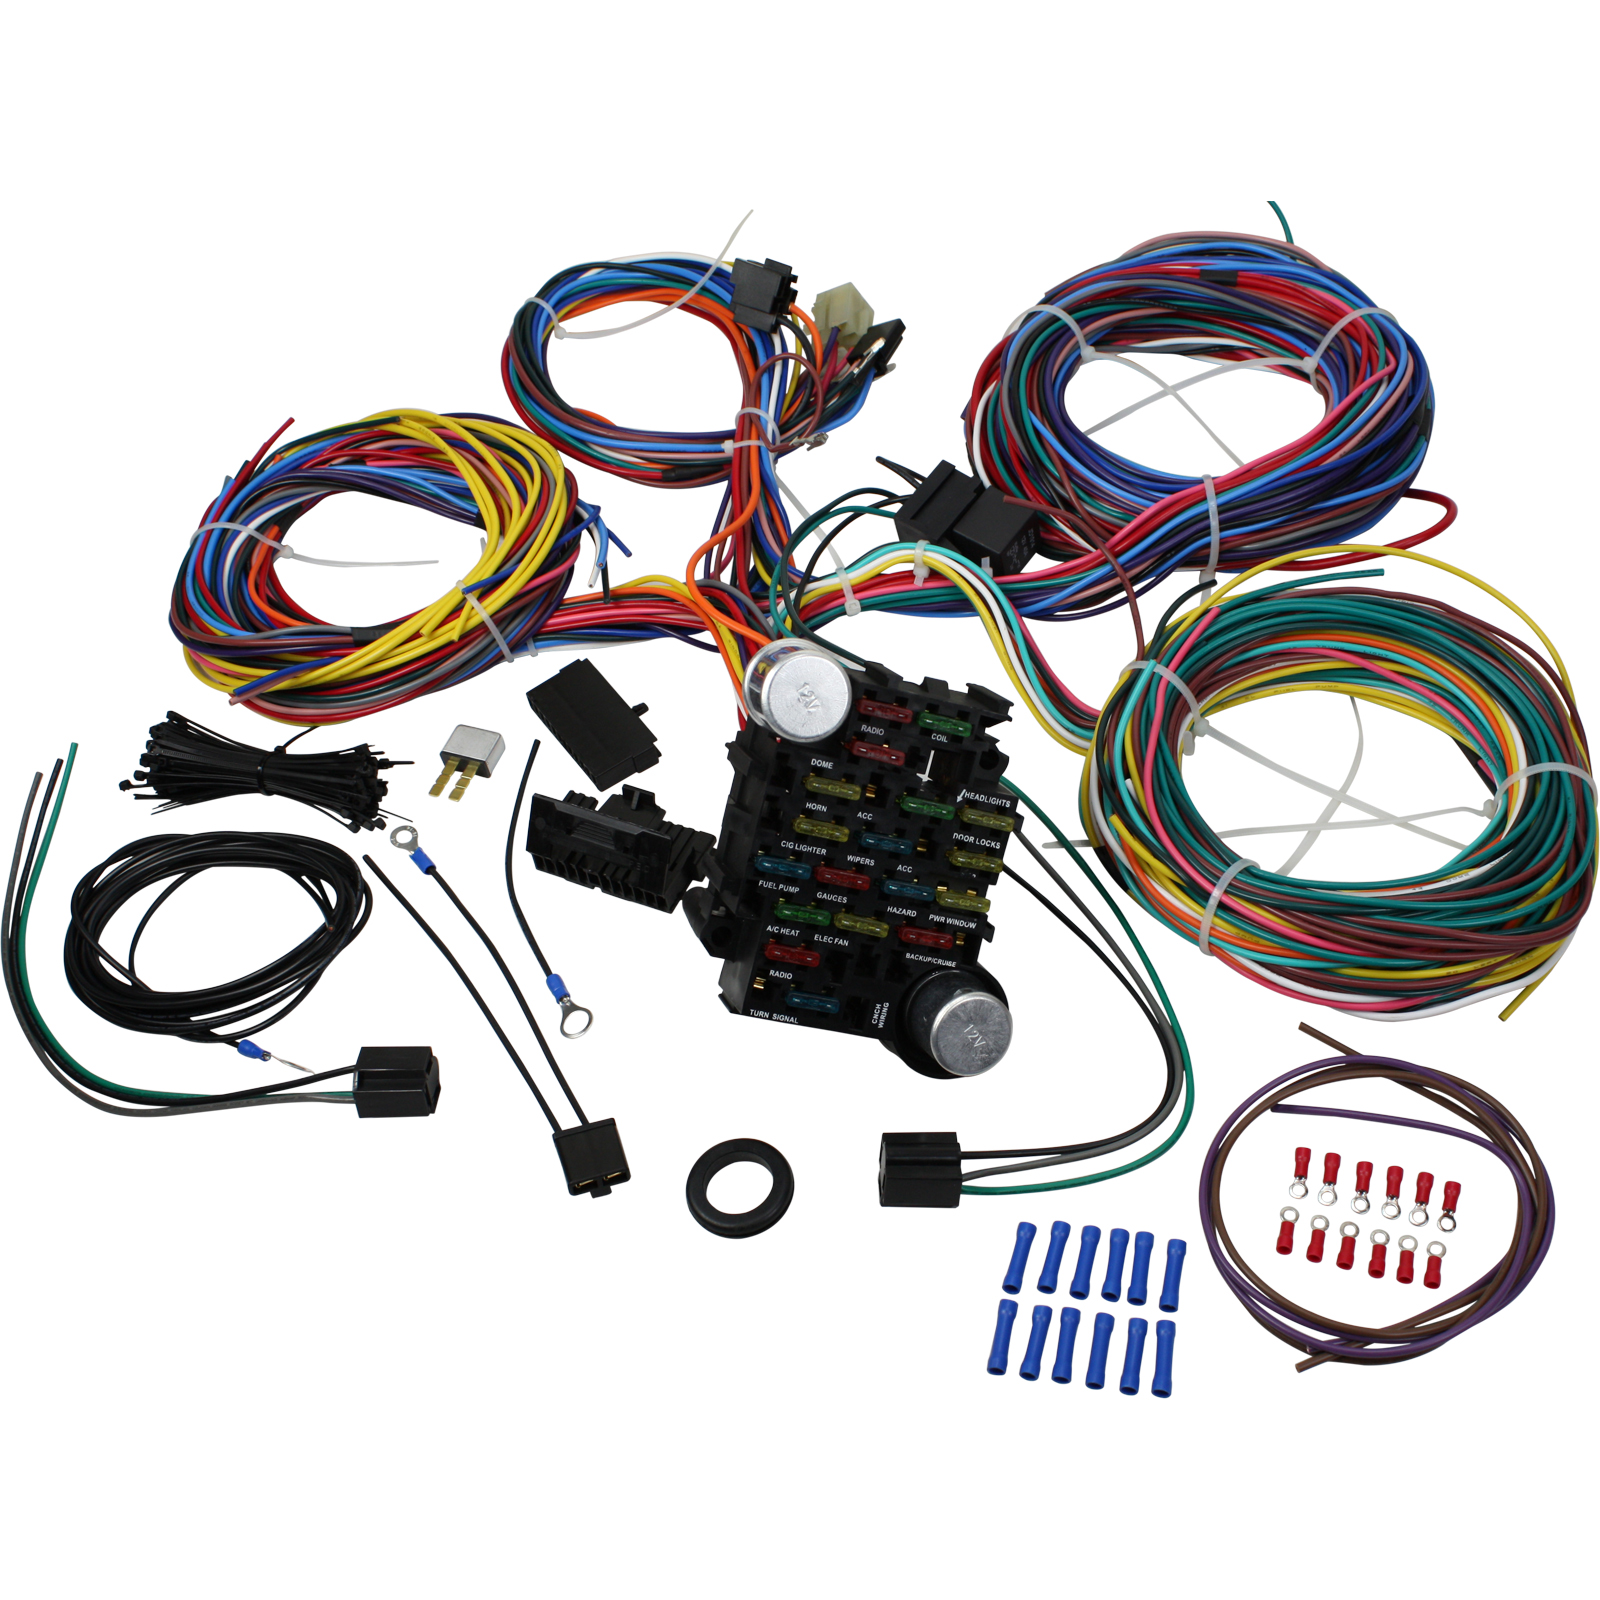 hight resolution of brand new 21 circuit wiring harness kit for all hot rods classics 4x4 custom project oem fit wh1001